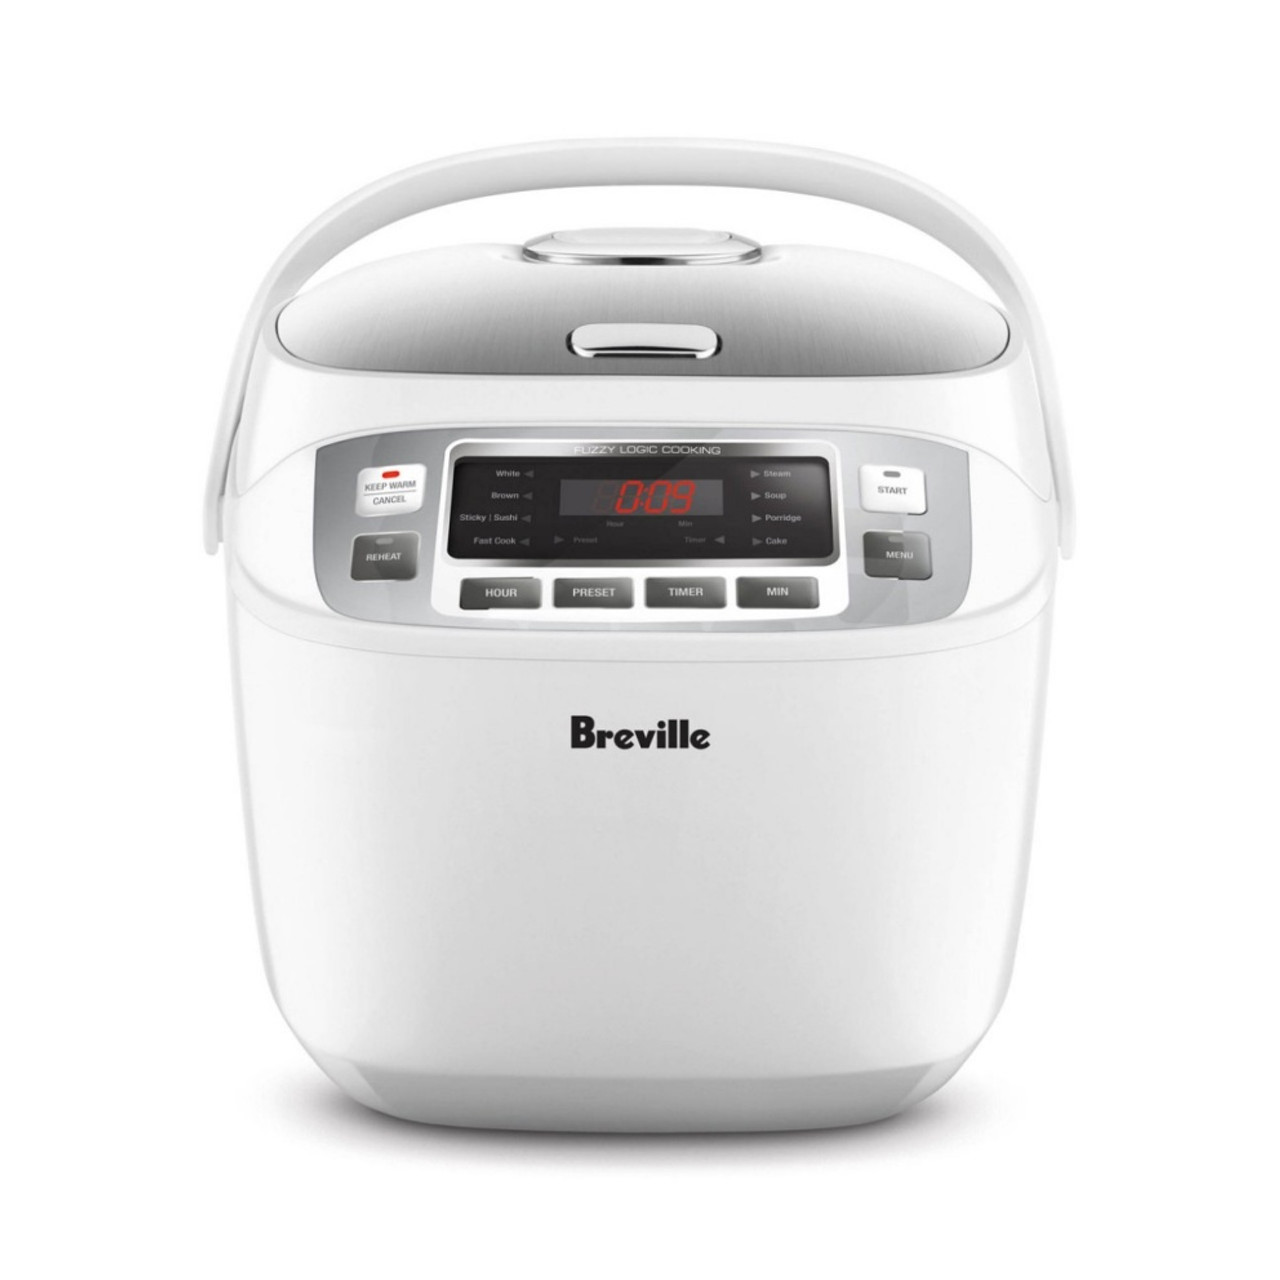 Breville LRC480WHT the Smart Rice Box 10 Cups Capacity Rice Cooker - White